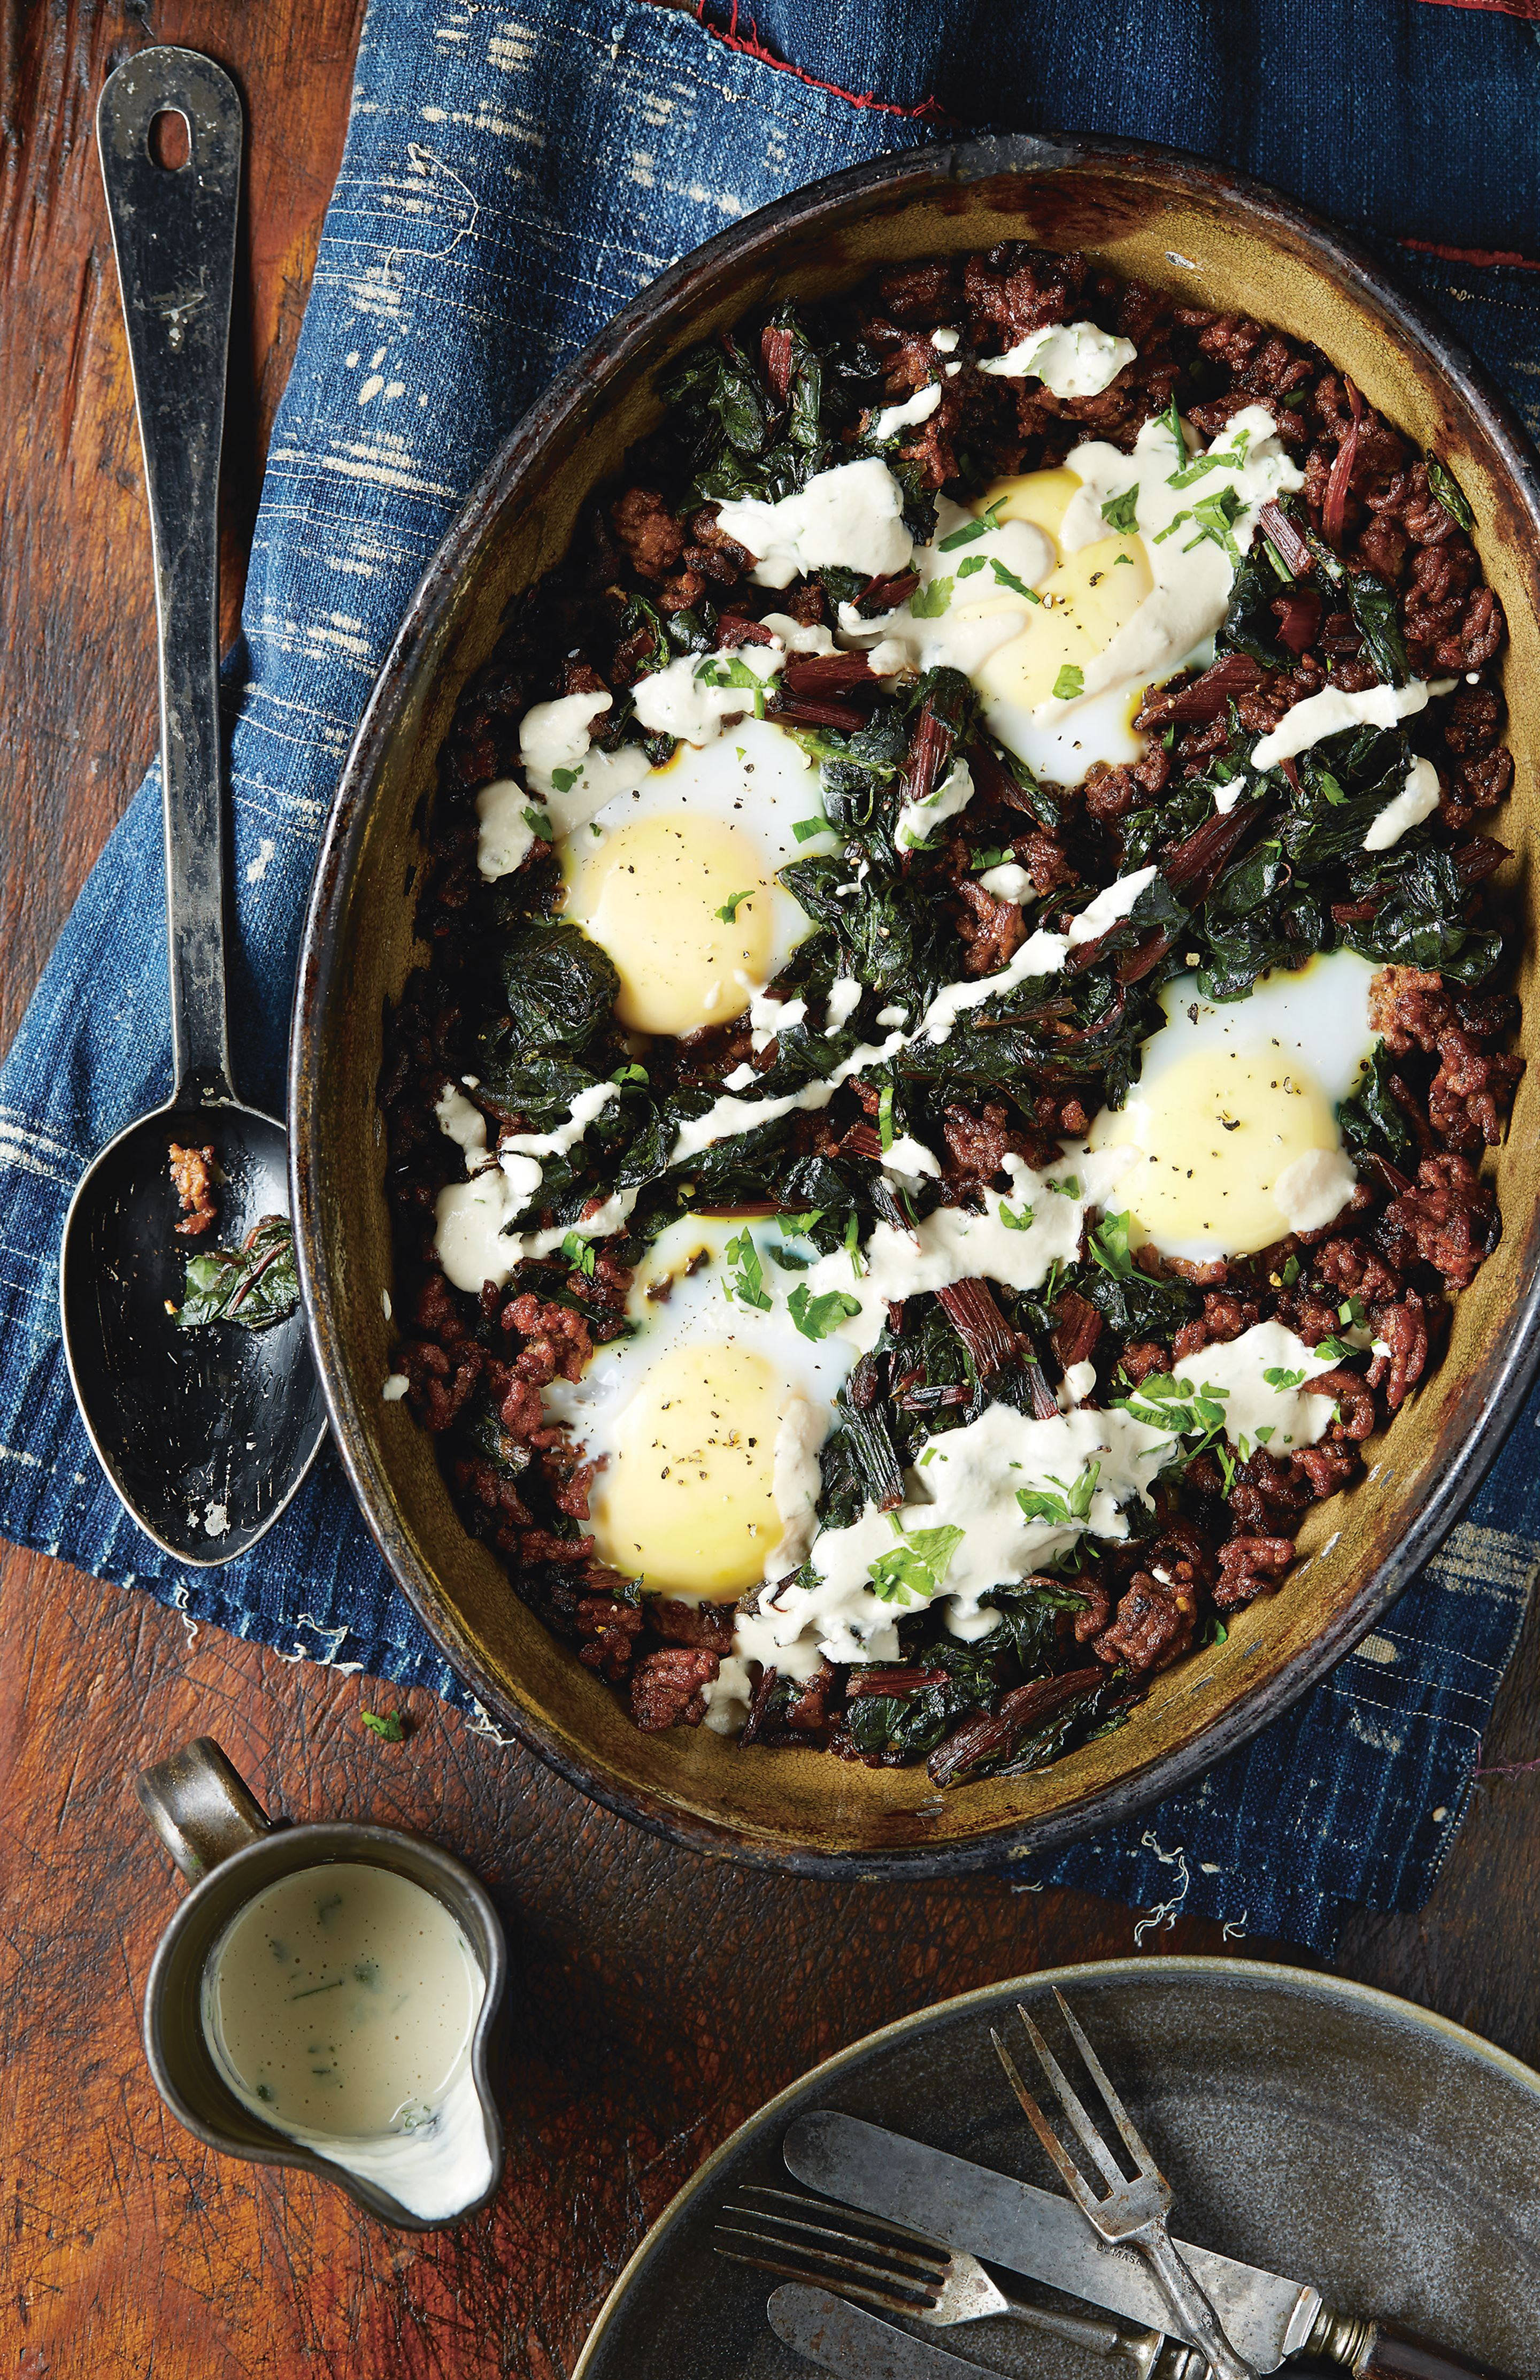 Beef, chard and egg casserole